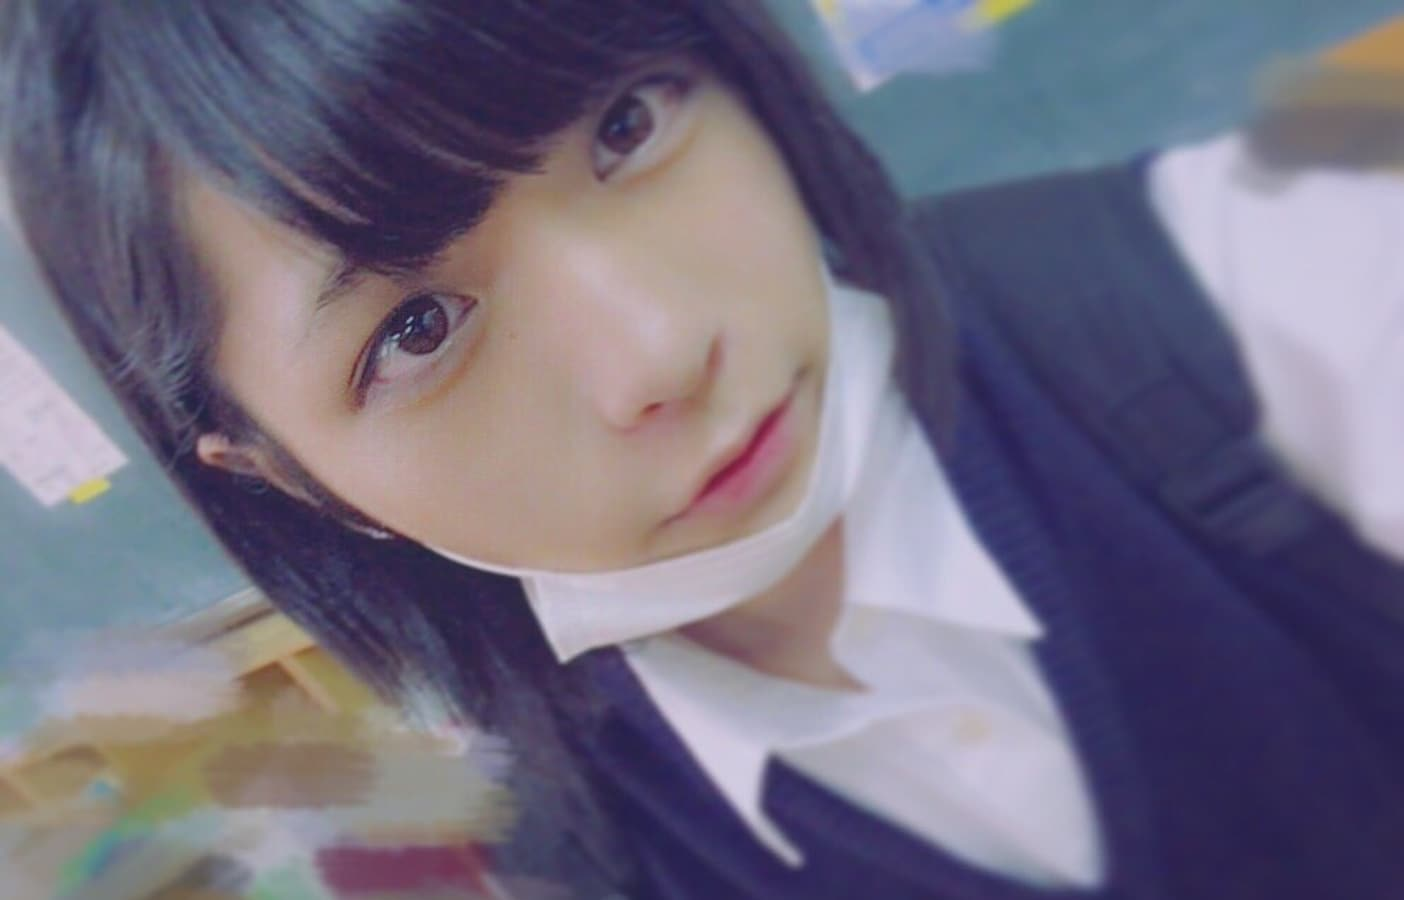 Japanese Highschooler Wows With His Cute Looks All About